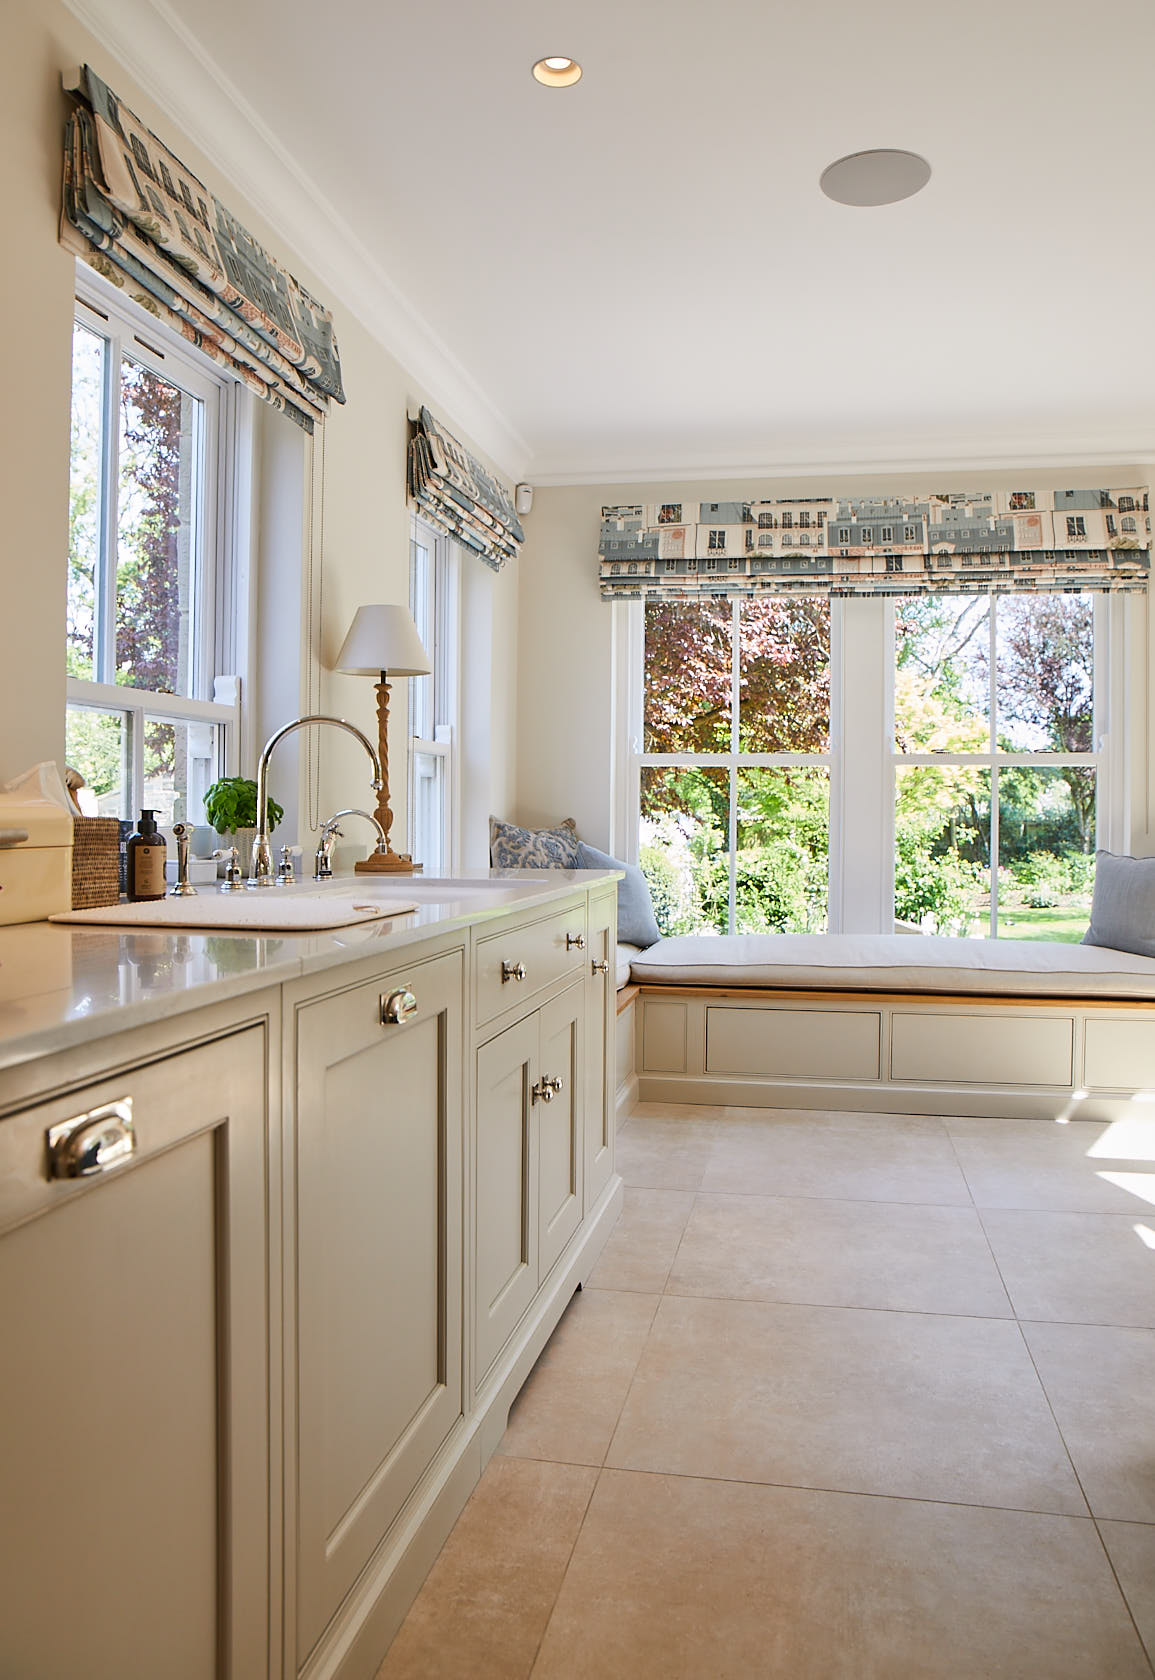 Traditional painted kitchen units with integrated ceramic sink and window seat